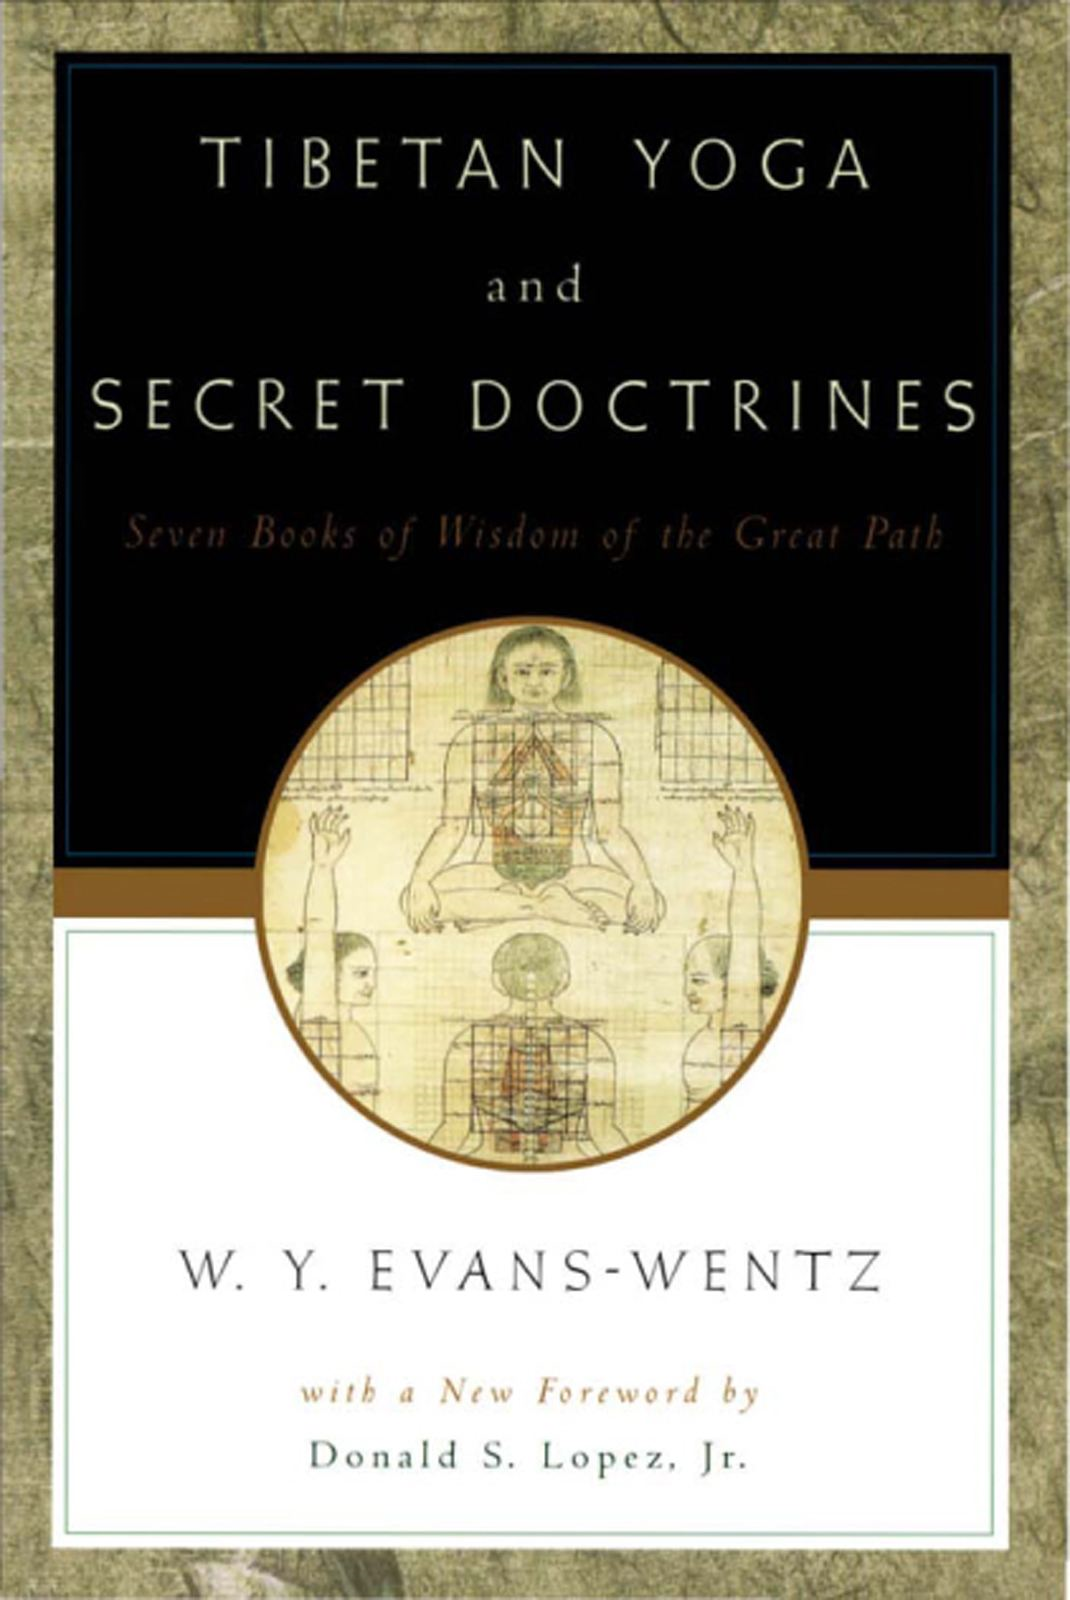 Tibetan Yoga and Secret Doctrines : Or Seven Books of Wisdom of the Great Path According to the Late Lama Kazi Dawa-Samdup's English Rendering